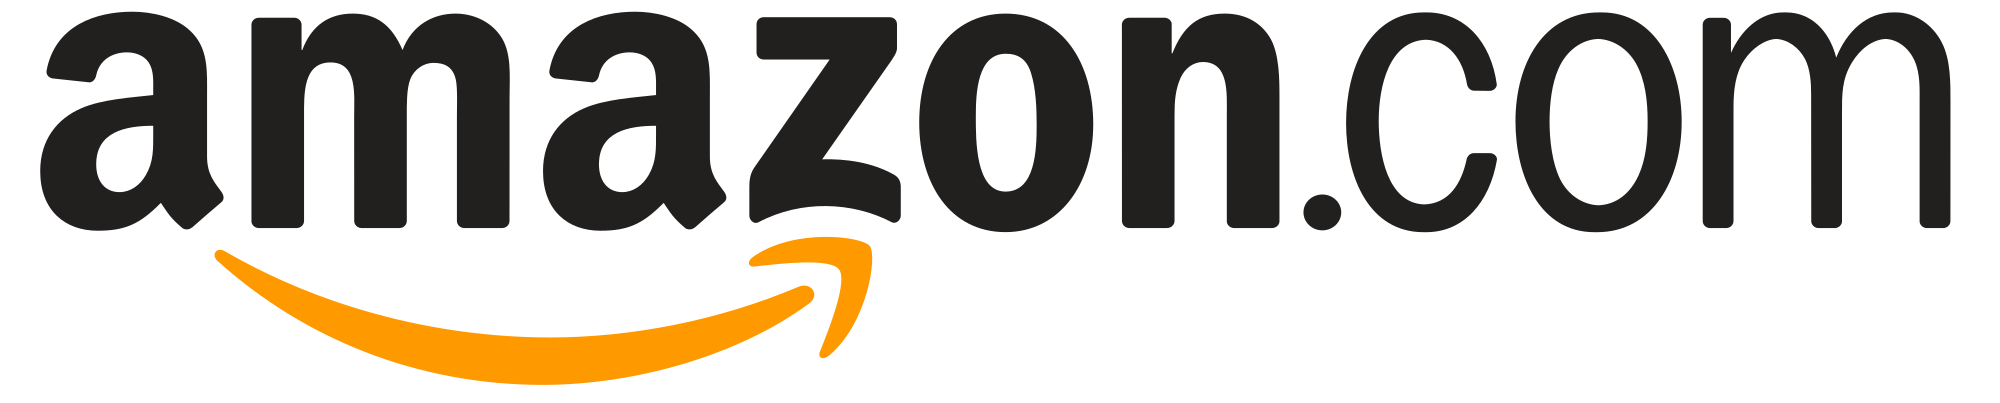 new-amazon-logo-png-transparent-background-2000-x-403-pixels-1